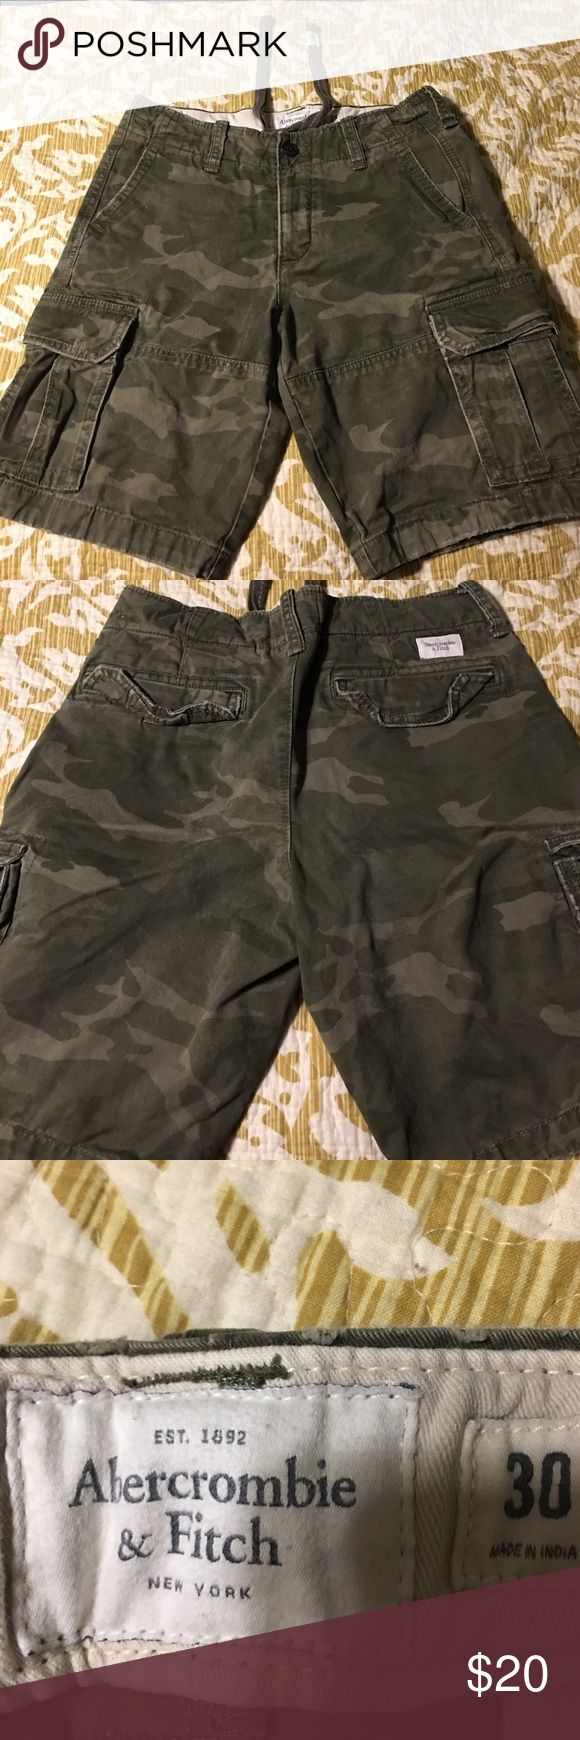 Abercrombie men's camouflage shorts size 30 Nice pair of size 30 waist men's shorts. Camouflage material, button fly, made of 100% cotton and have several pockets. May have worn once and have no rips or stains with tie at inside waist area. Abercrombie & Fitch Shorts Cargo